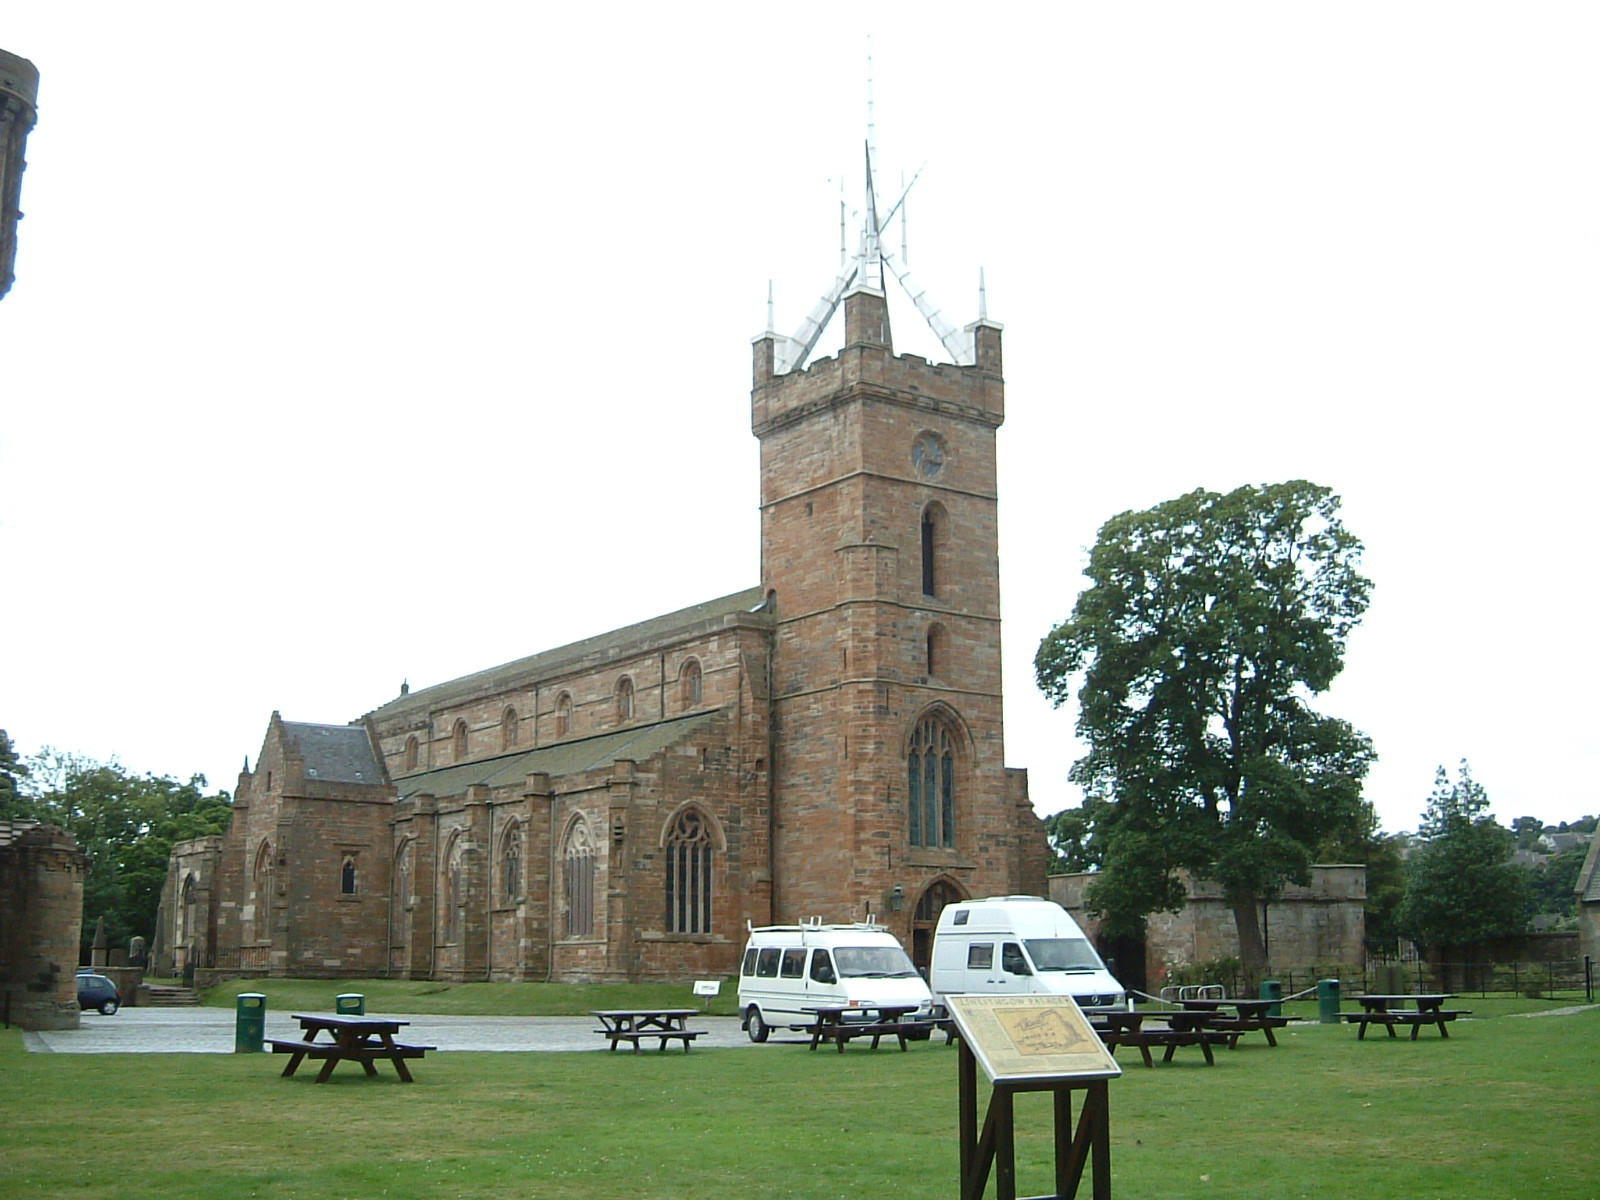 St Michael's Church in Linlithgow